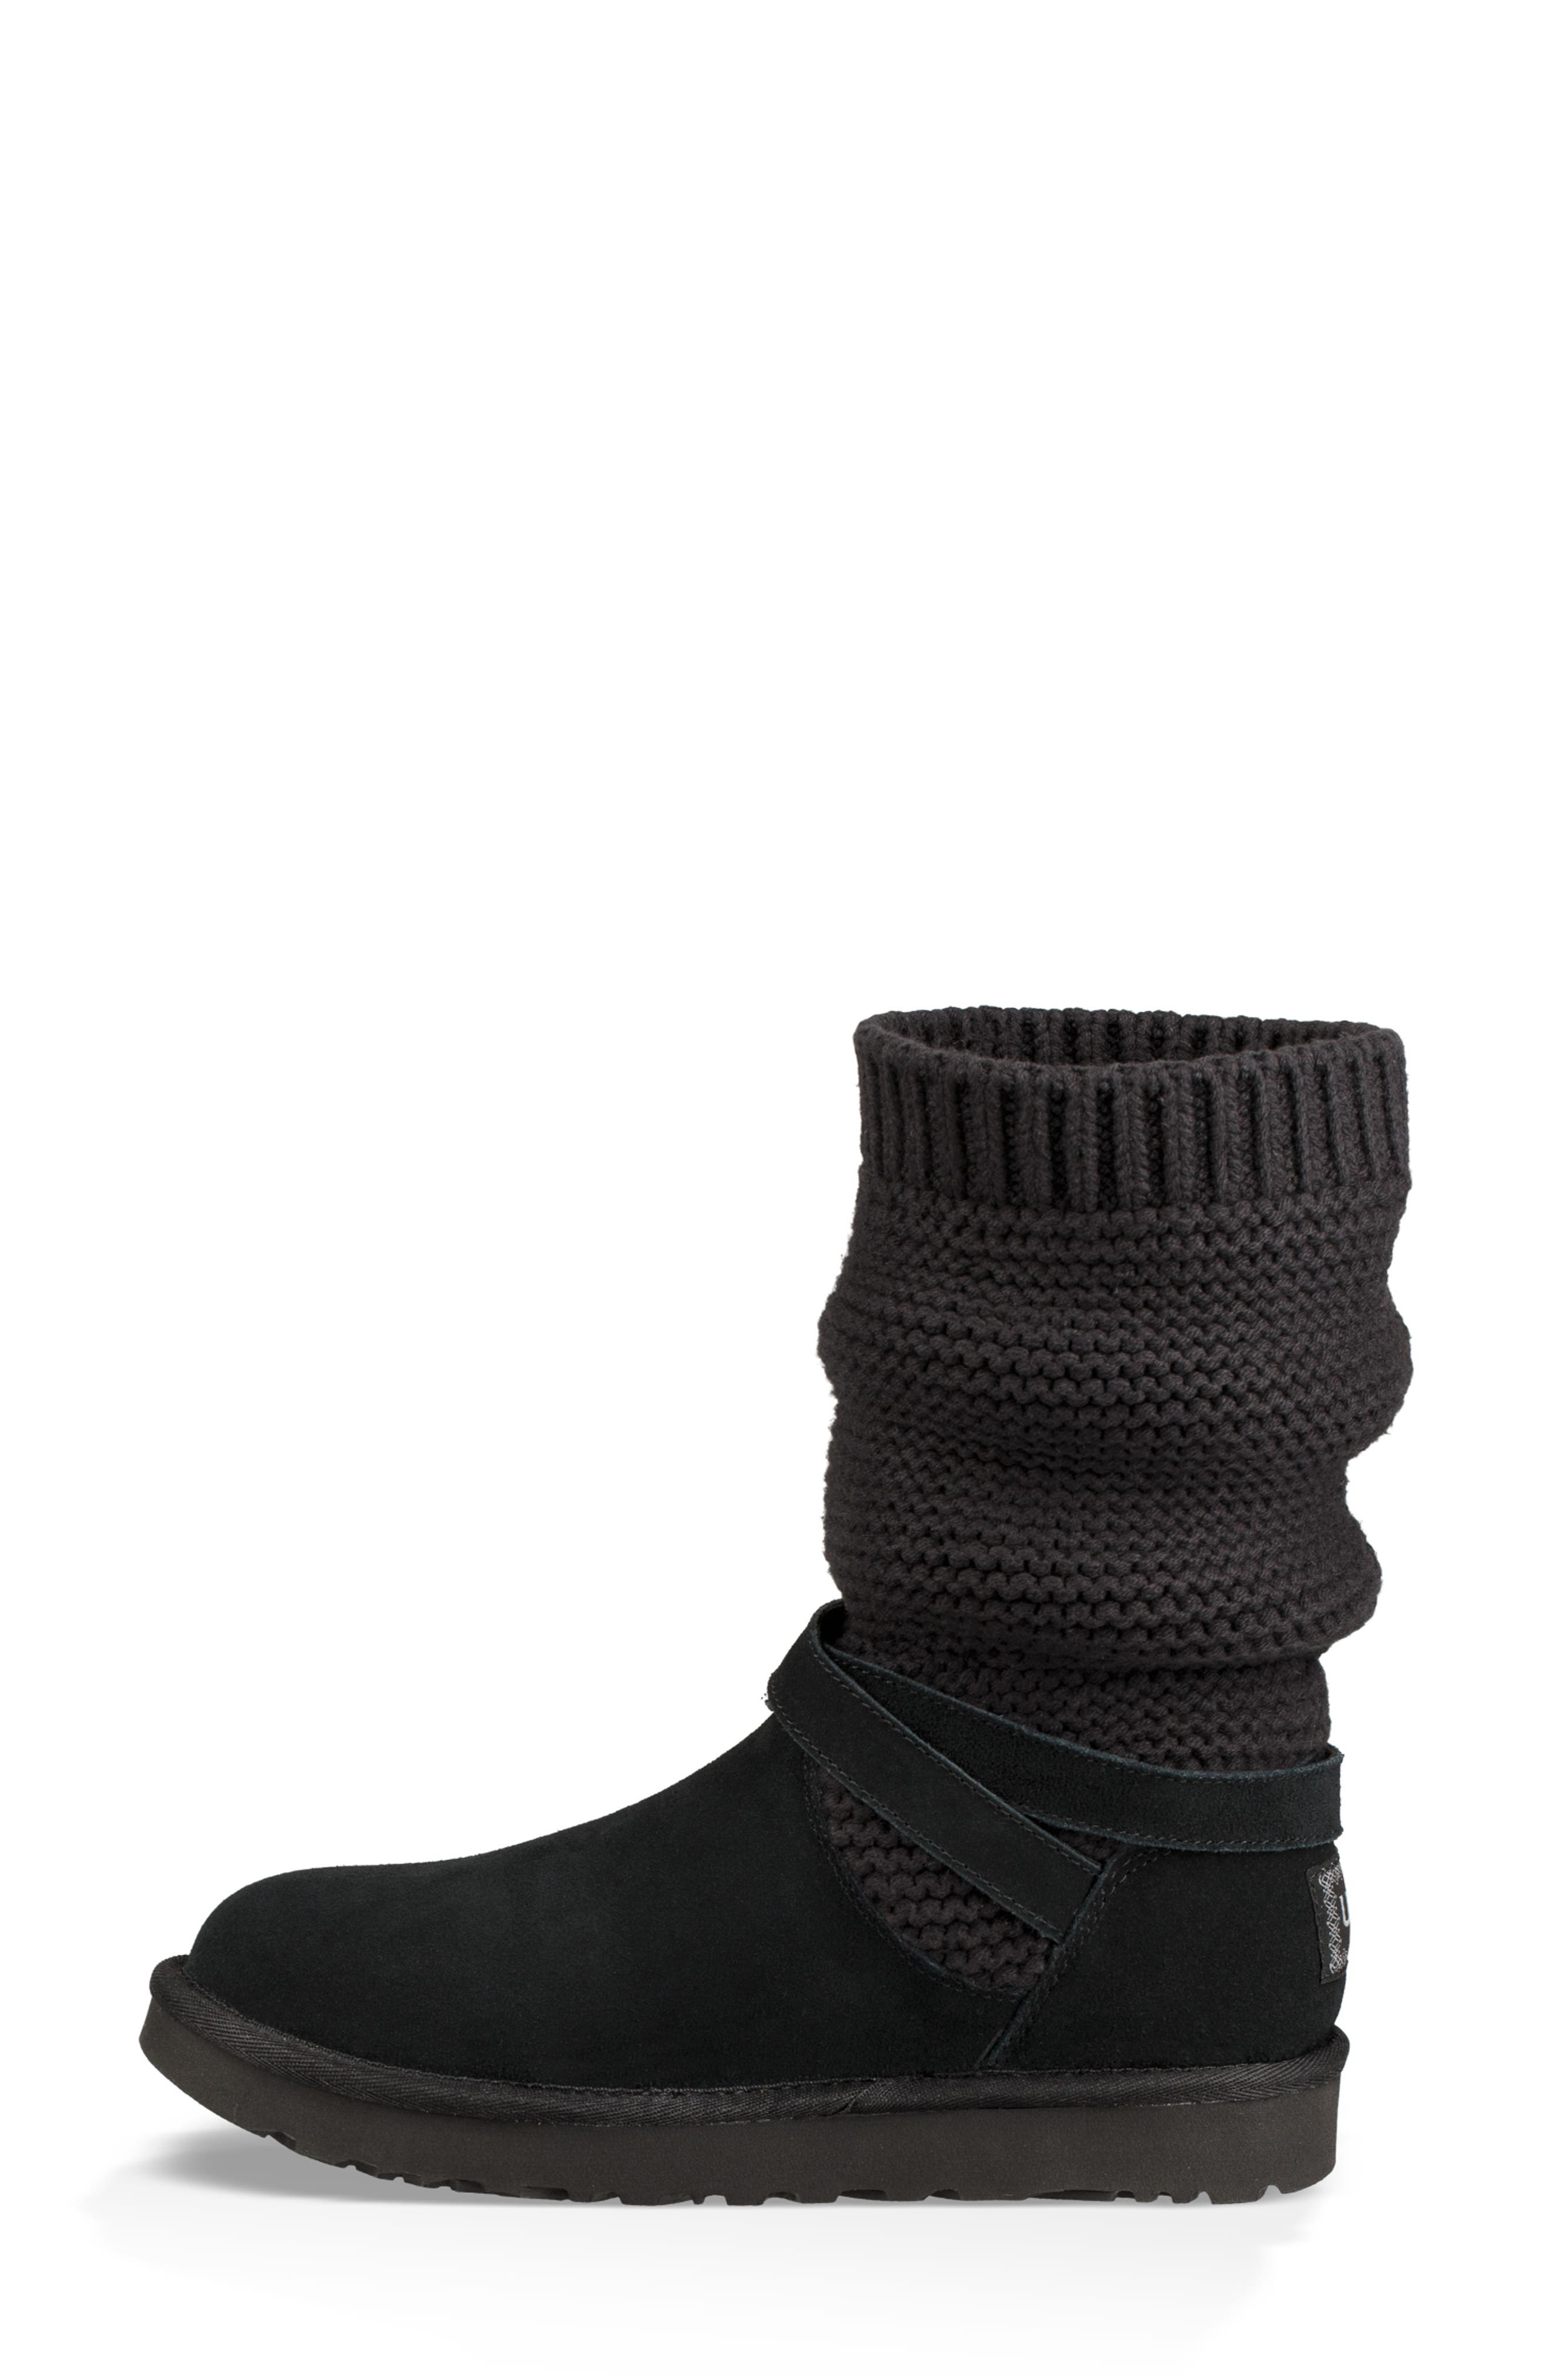 UGGpure<sup>™</sup> Strappy Purl Knit Bootie,                             Alternate thumbnail 7, color,                             BLACK SUEDE